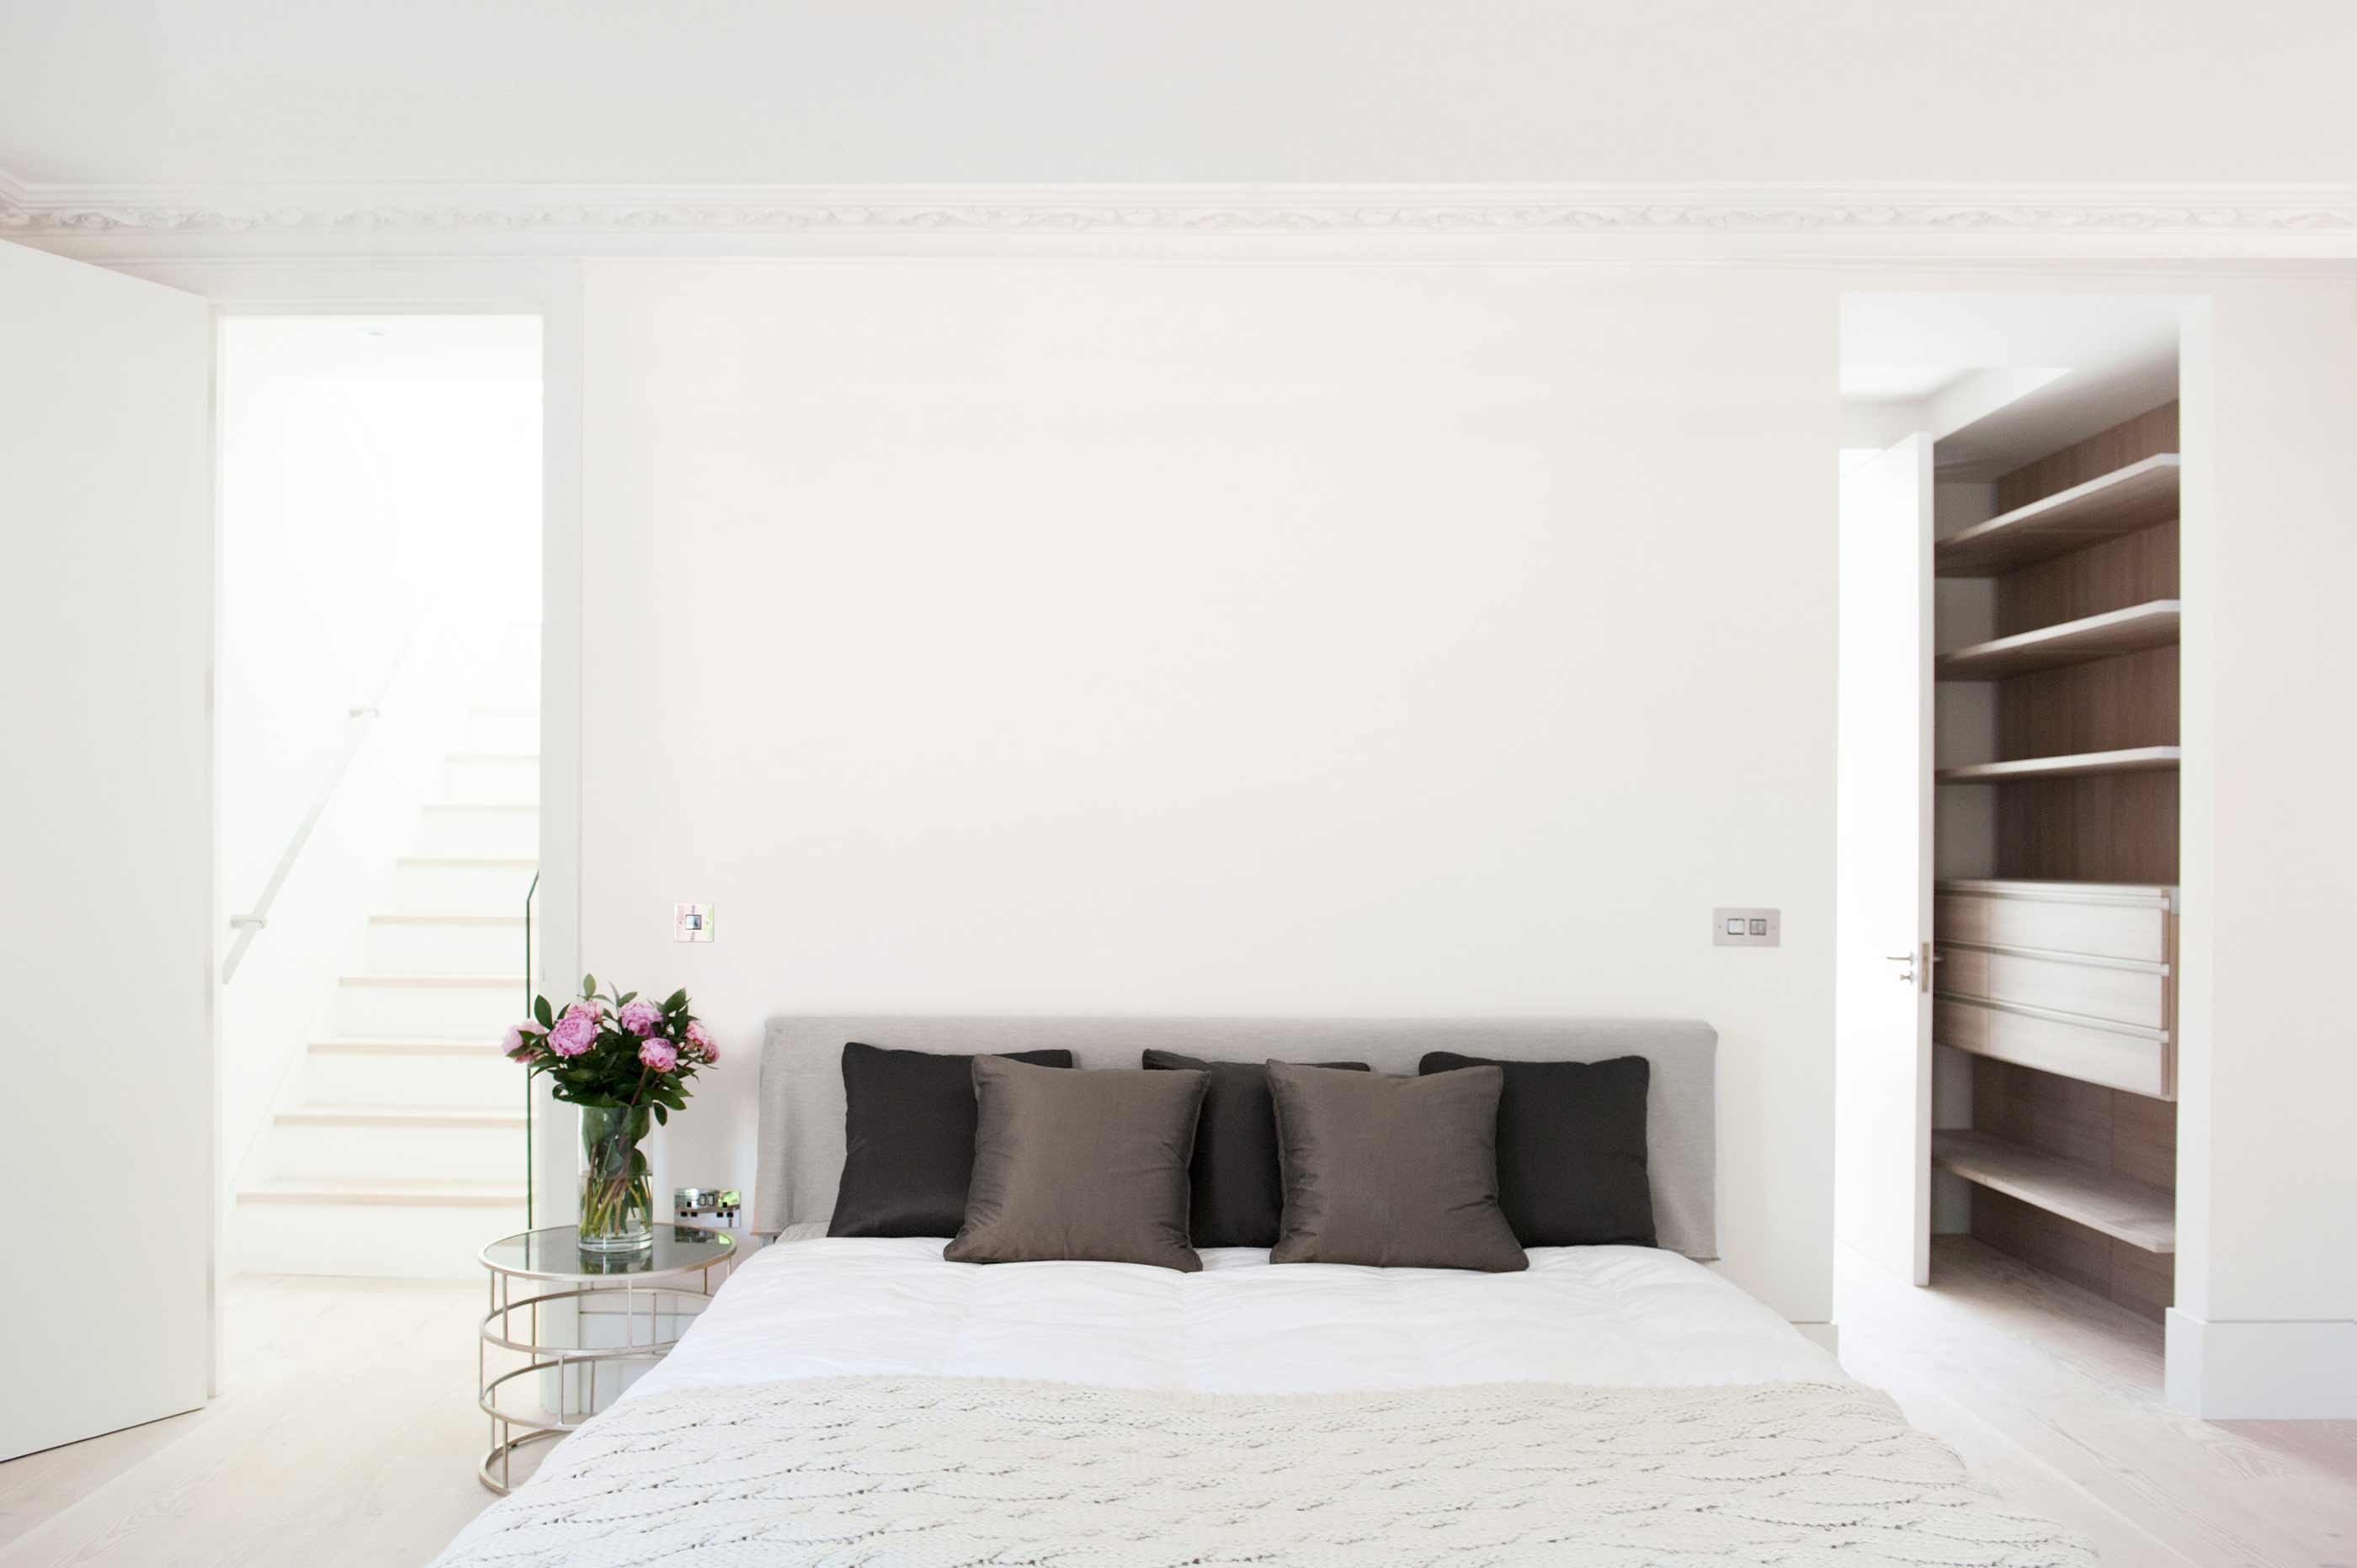 Hampstead Heath - residential house full refurbishment extension bedroom interior design